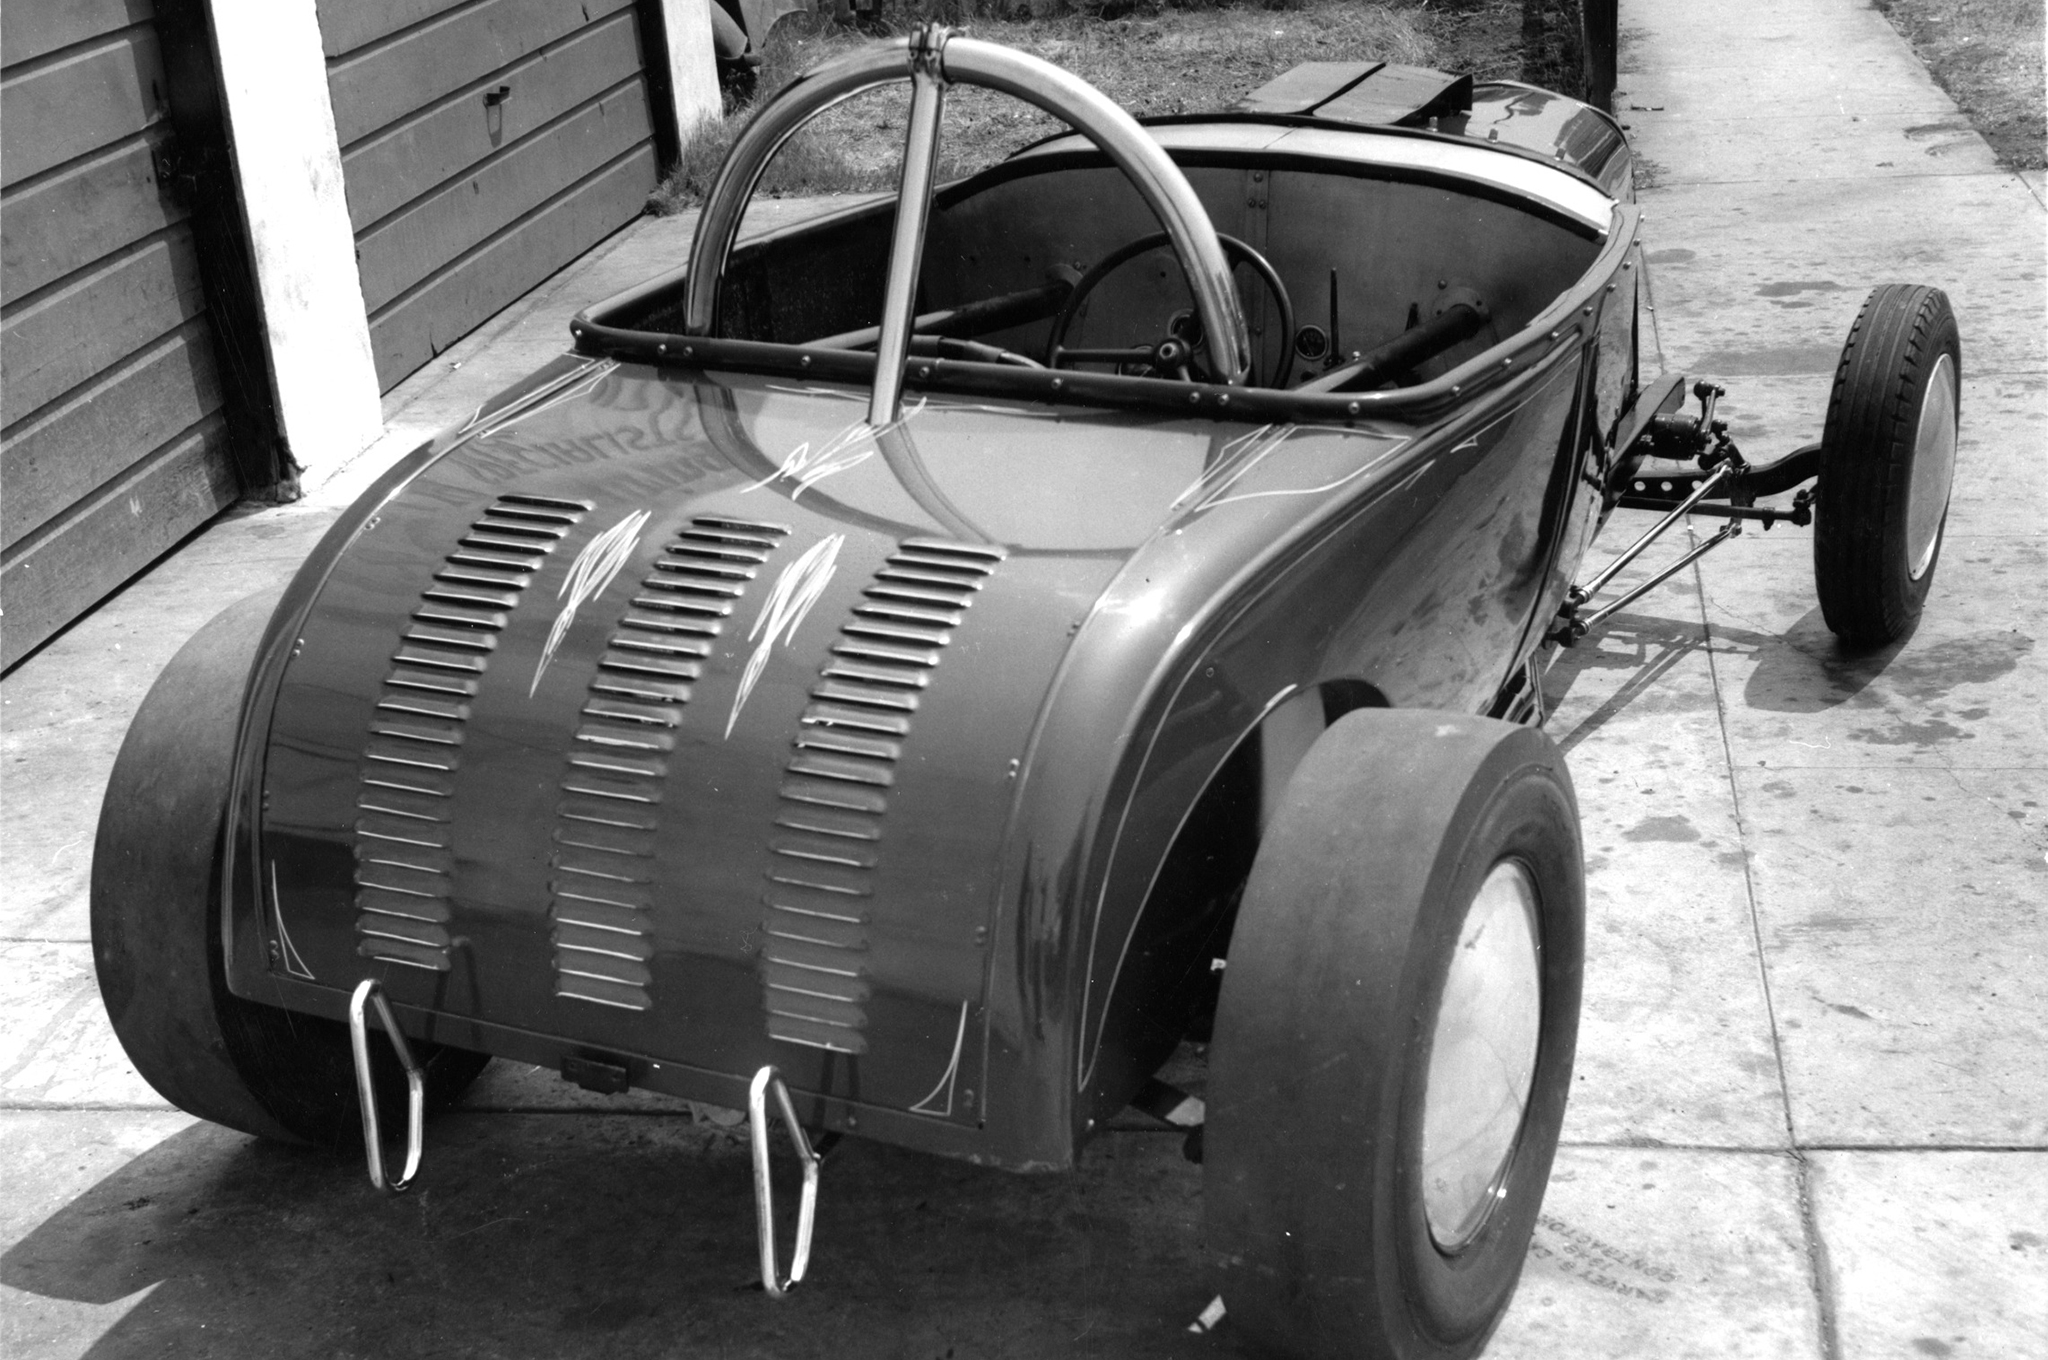 Between the Inglewood slicks was a Halibrand quick-change with 3.78 gears. The rest of the driveline consisted of a Schiefer clutch, '38 Cadillac transmission, and a closed Ford driveshaft.